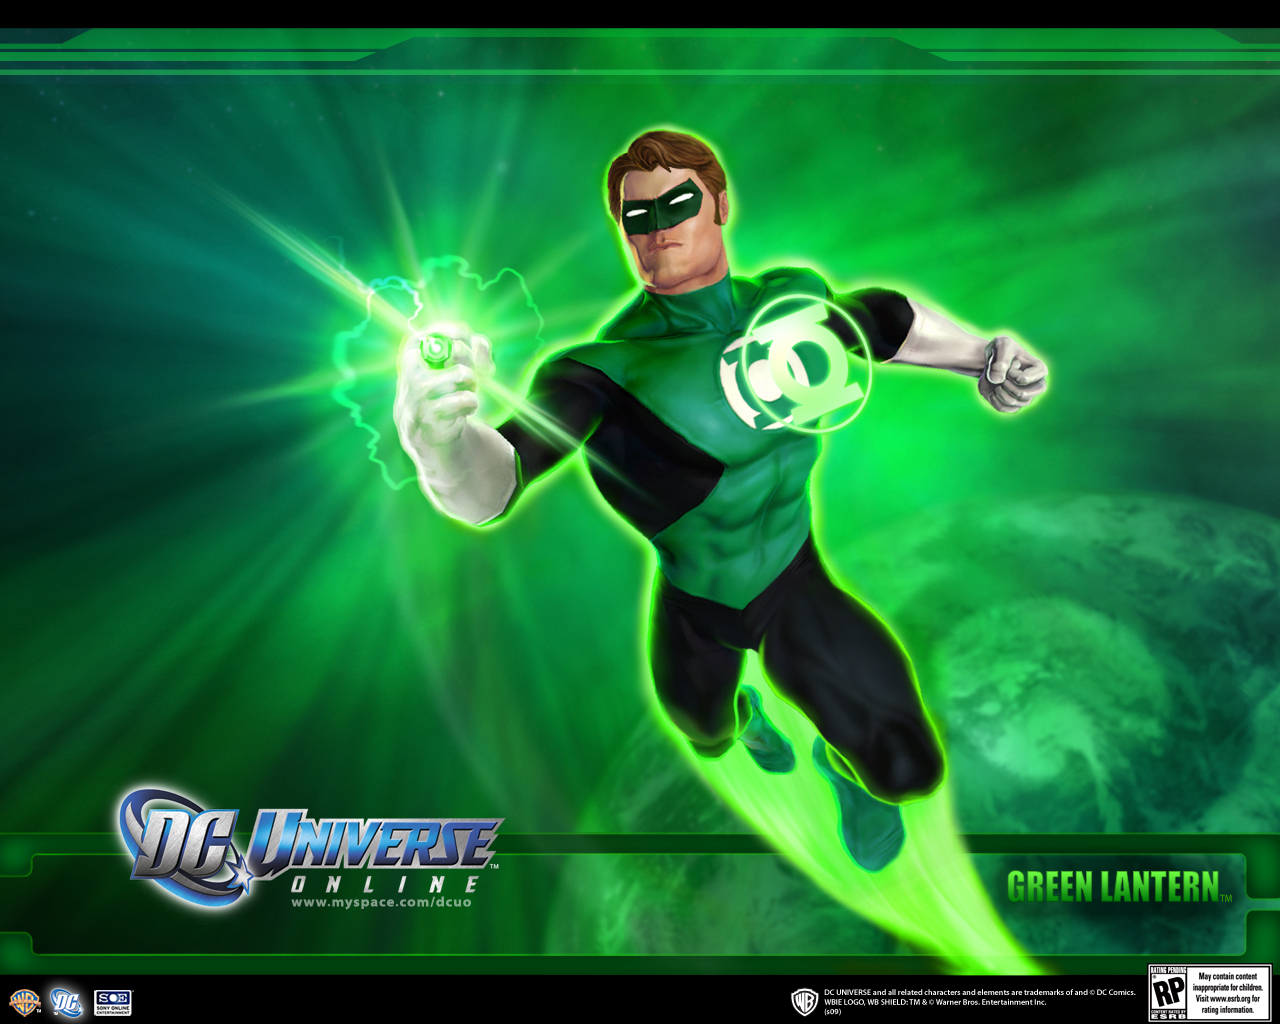 the green lantern corps images green lantern hd wallpaper and background photos 16566876